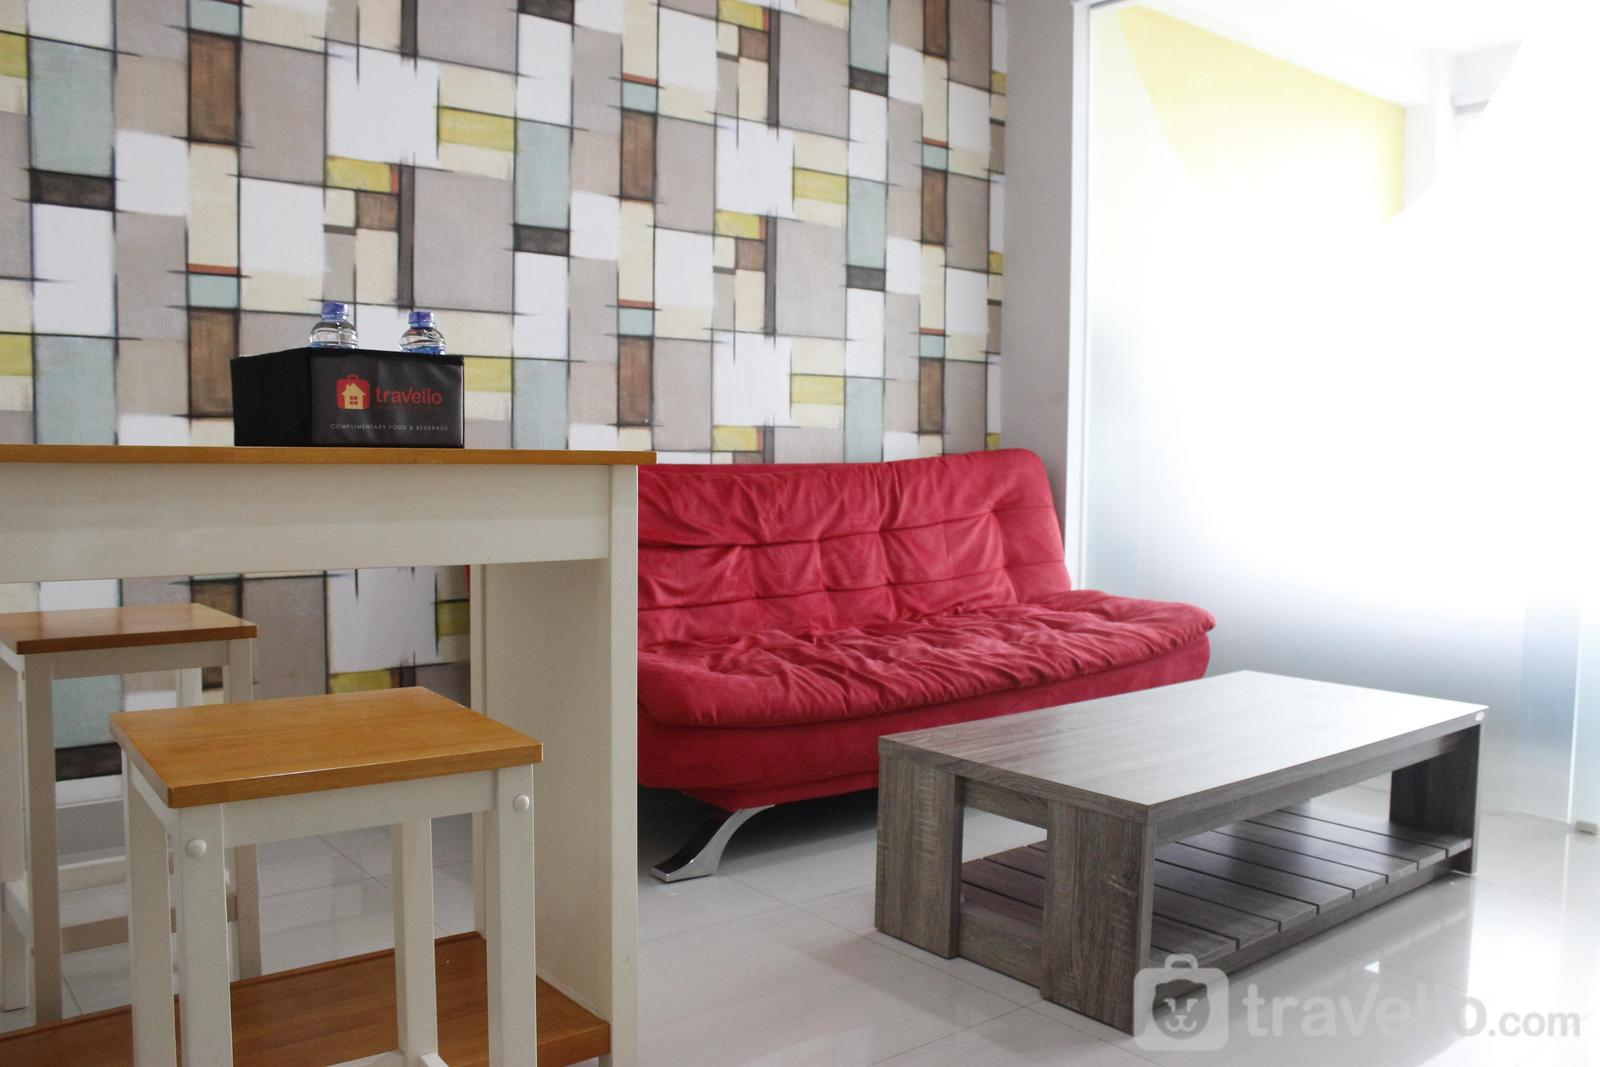 Dago Suites Apartment - Trendy 1BR near ITB @ Dago Suites Apartment By Travelio